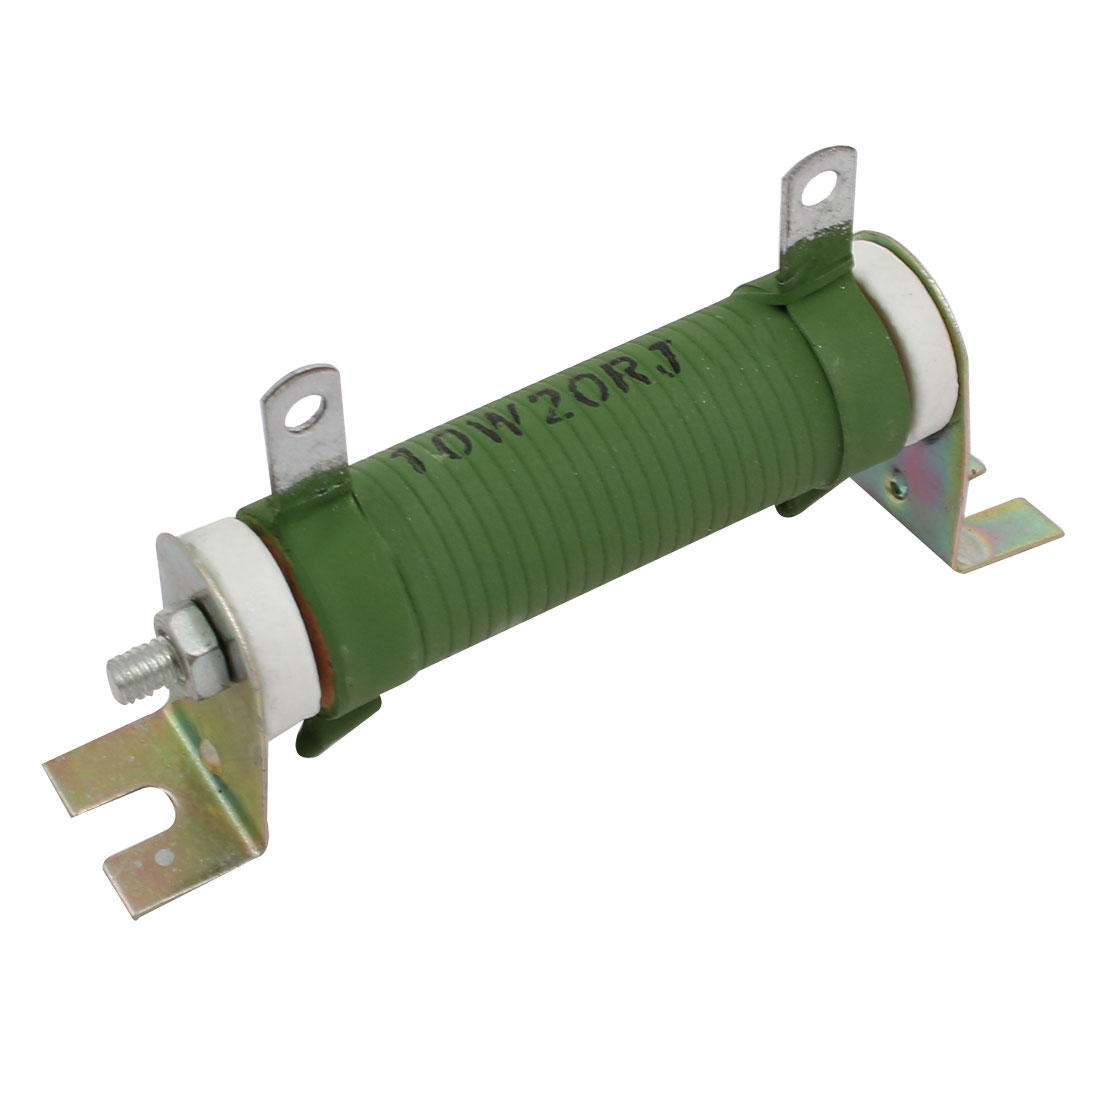 10W 20 Ohm Nonflammable Fixed Type Wire Wound Resistor Green